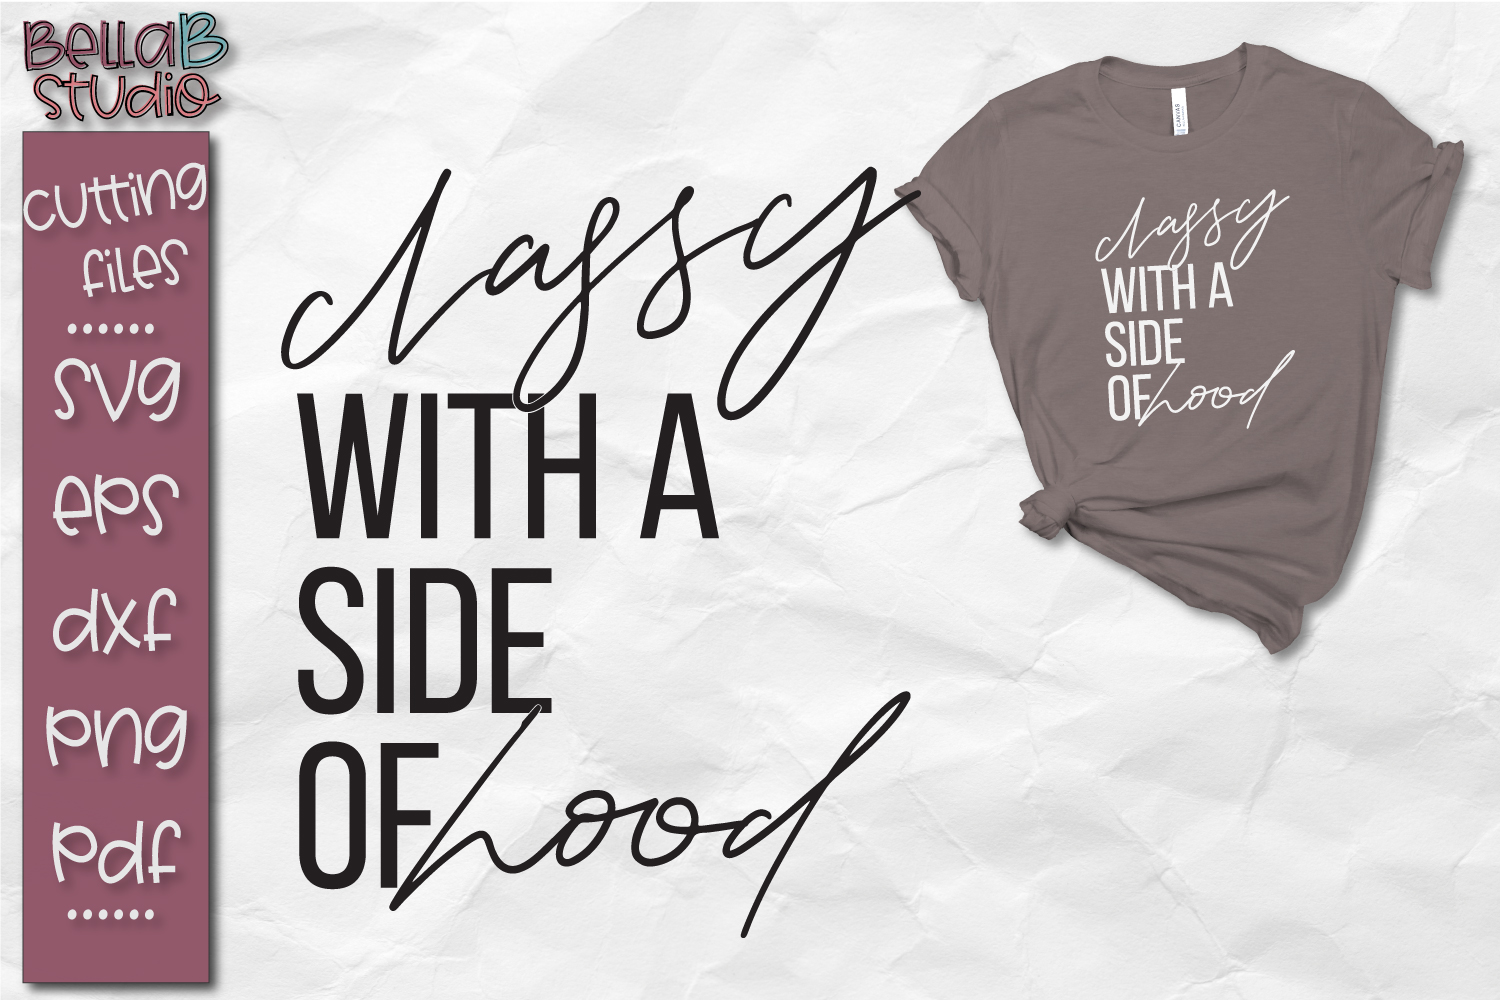 Classy With A Side Of Hood SVG Cut File, Classy SVG File example image 1